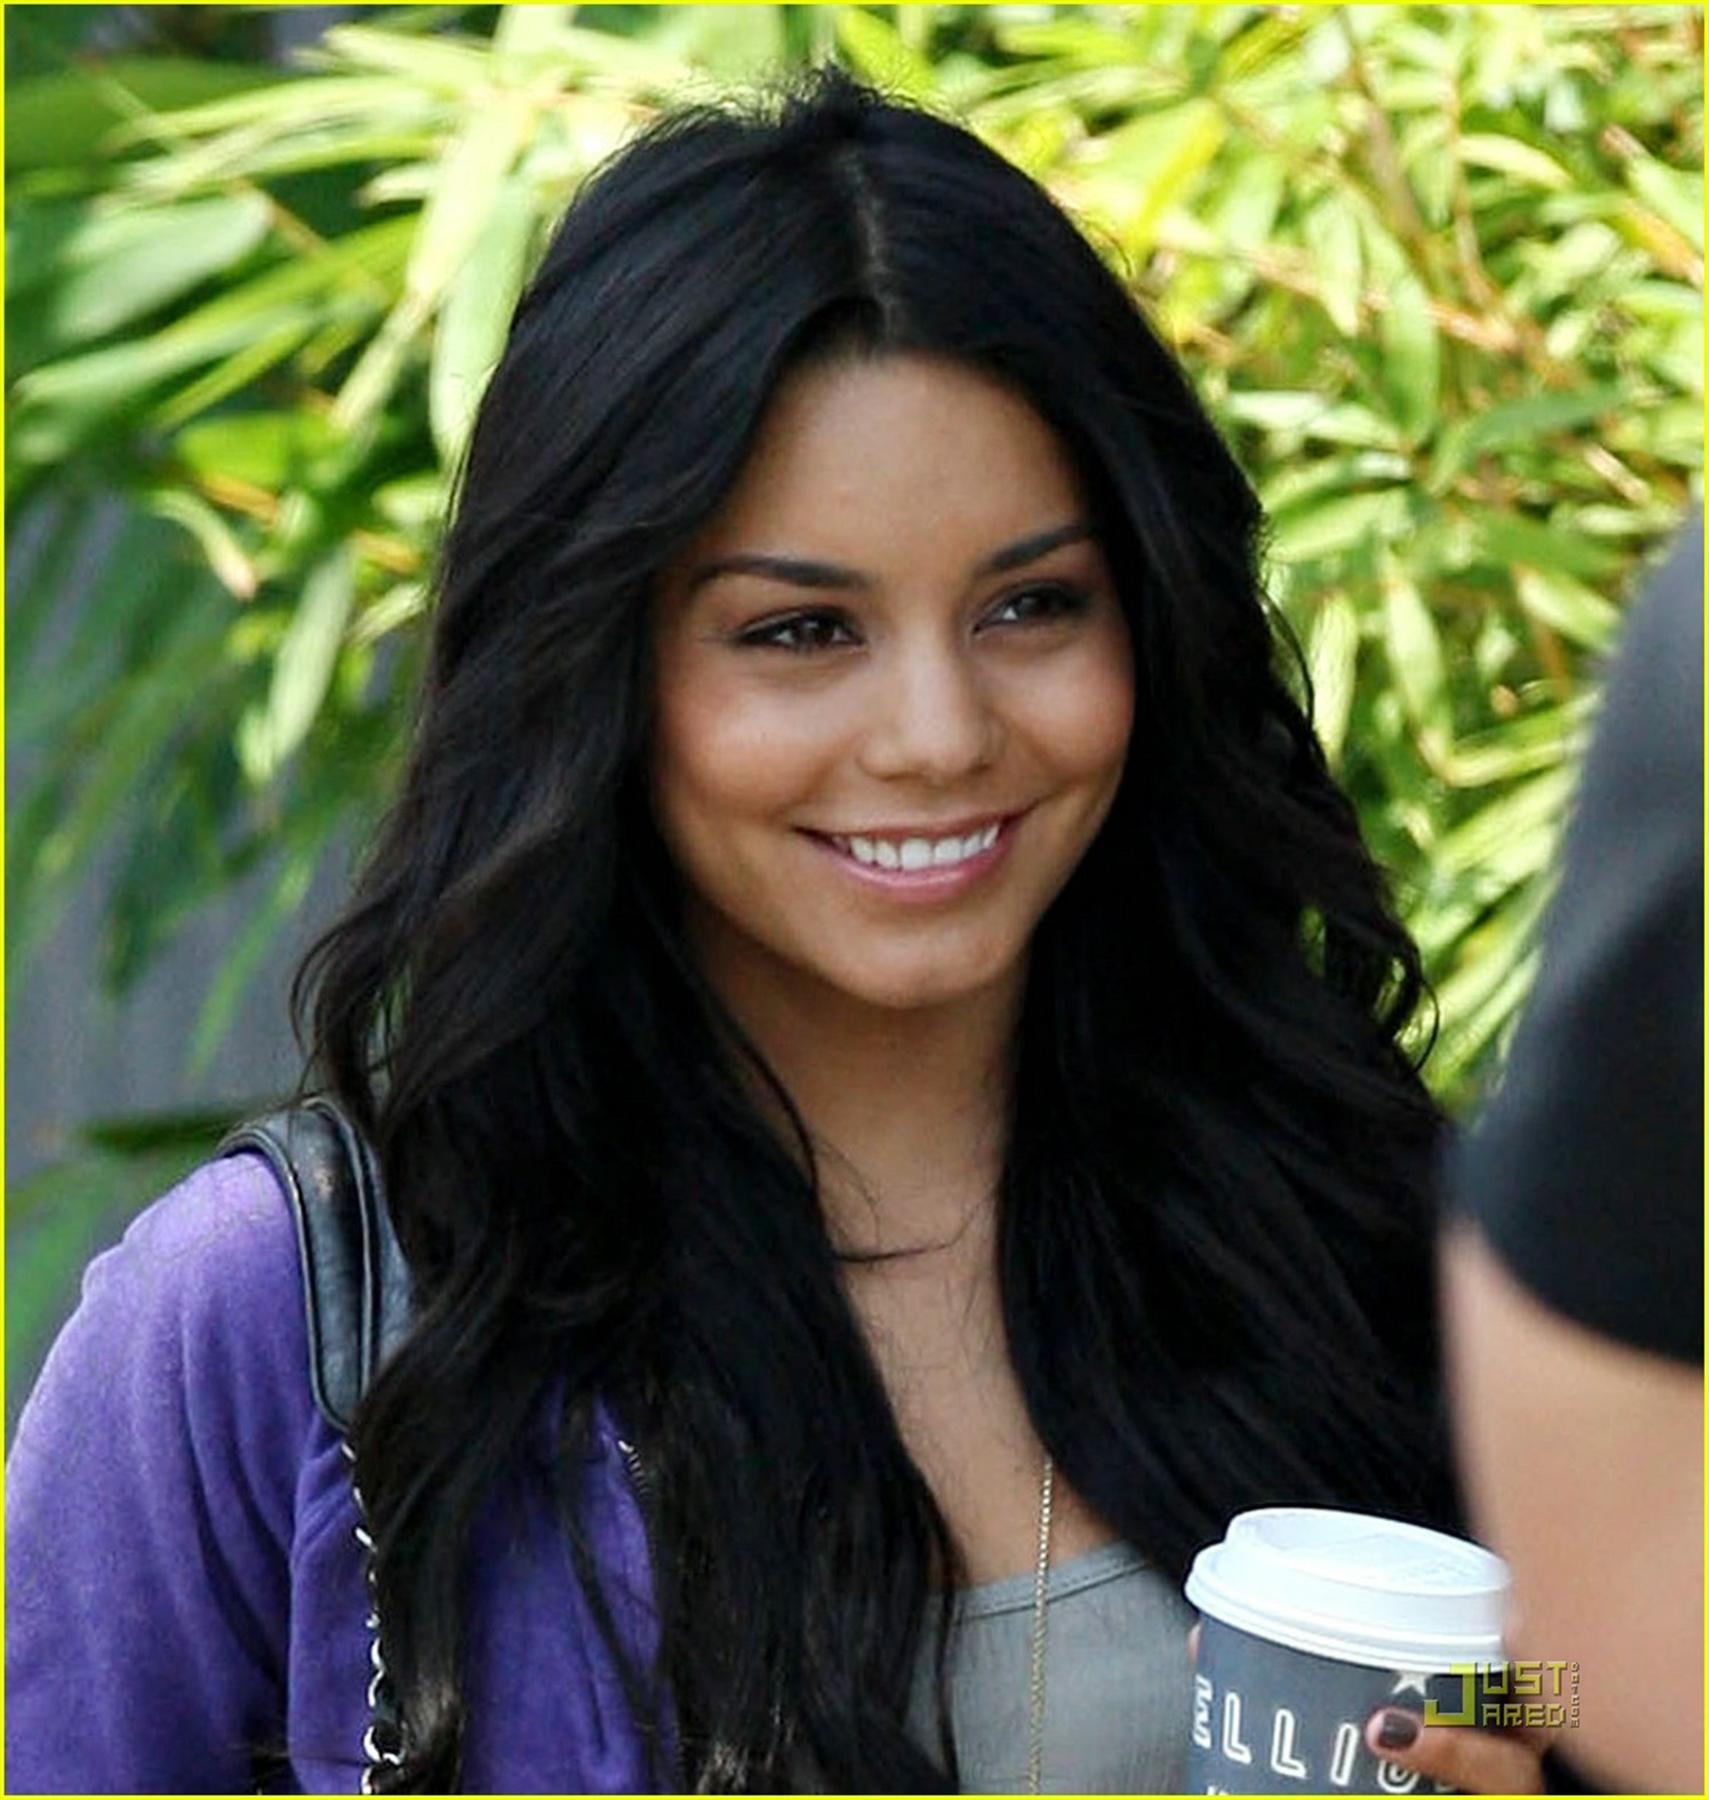 75827 Vanessa Hudgens bikini  sp hq99 122 73lo ROLEPLAY! It's not like I have something better to do (: discussion